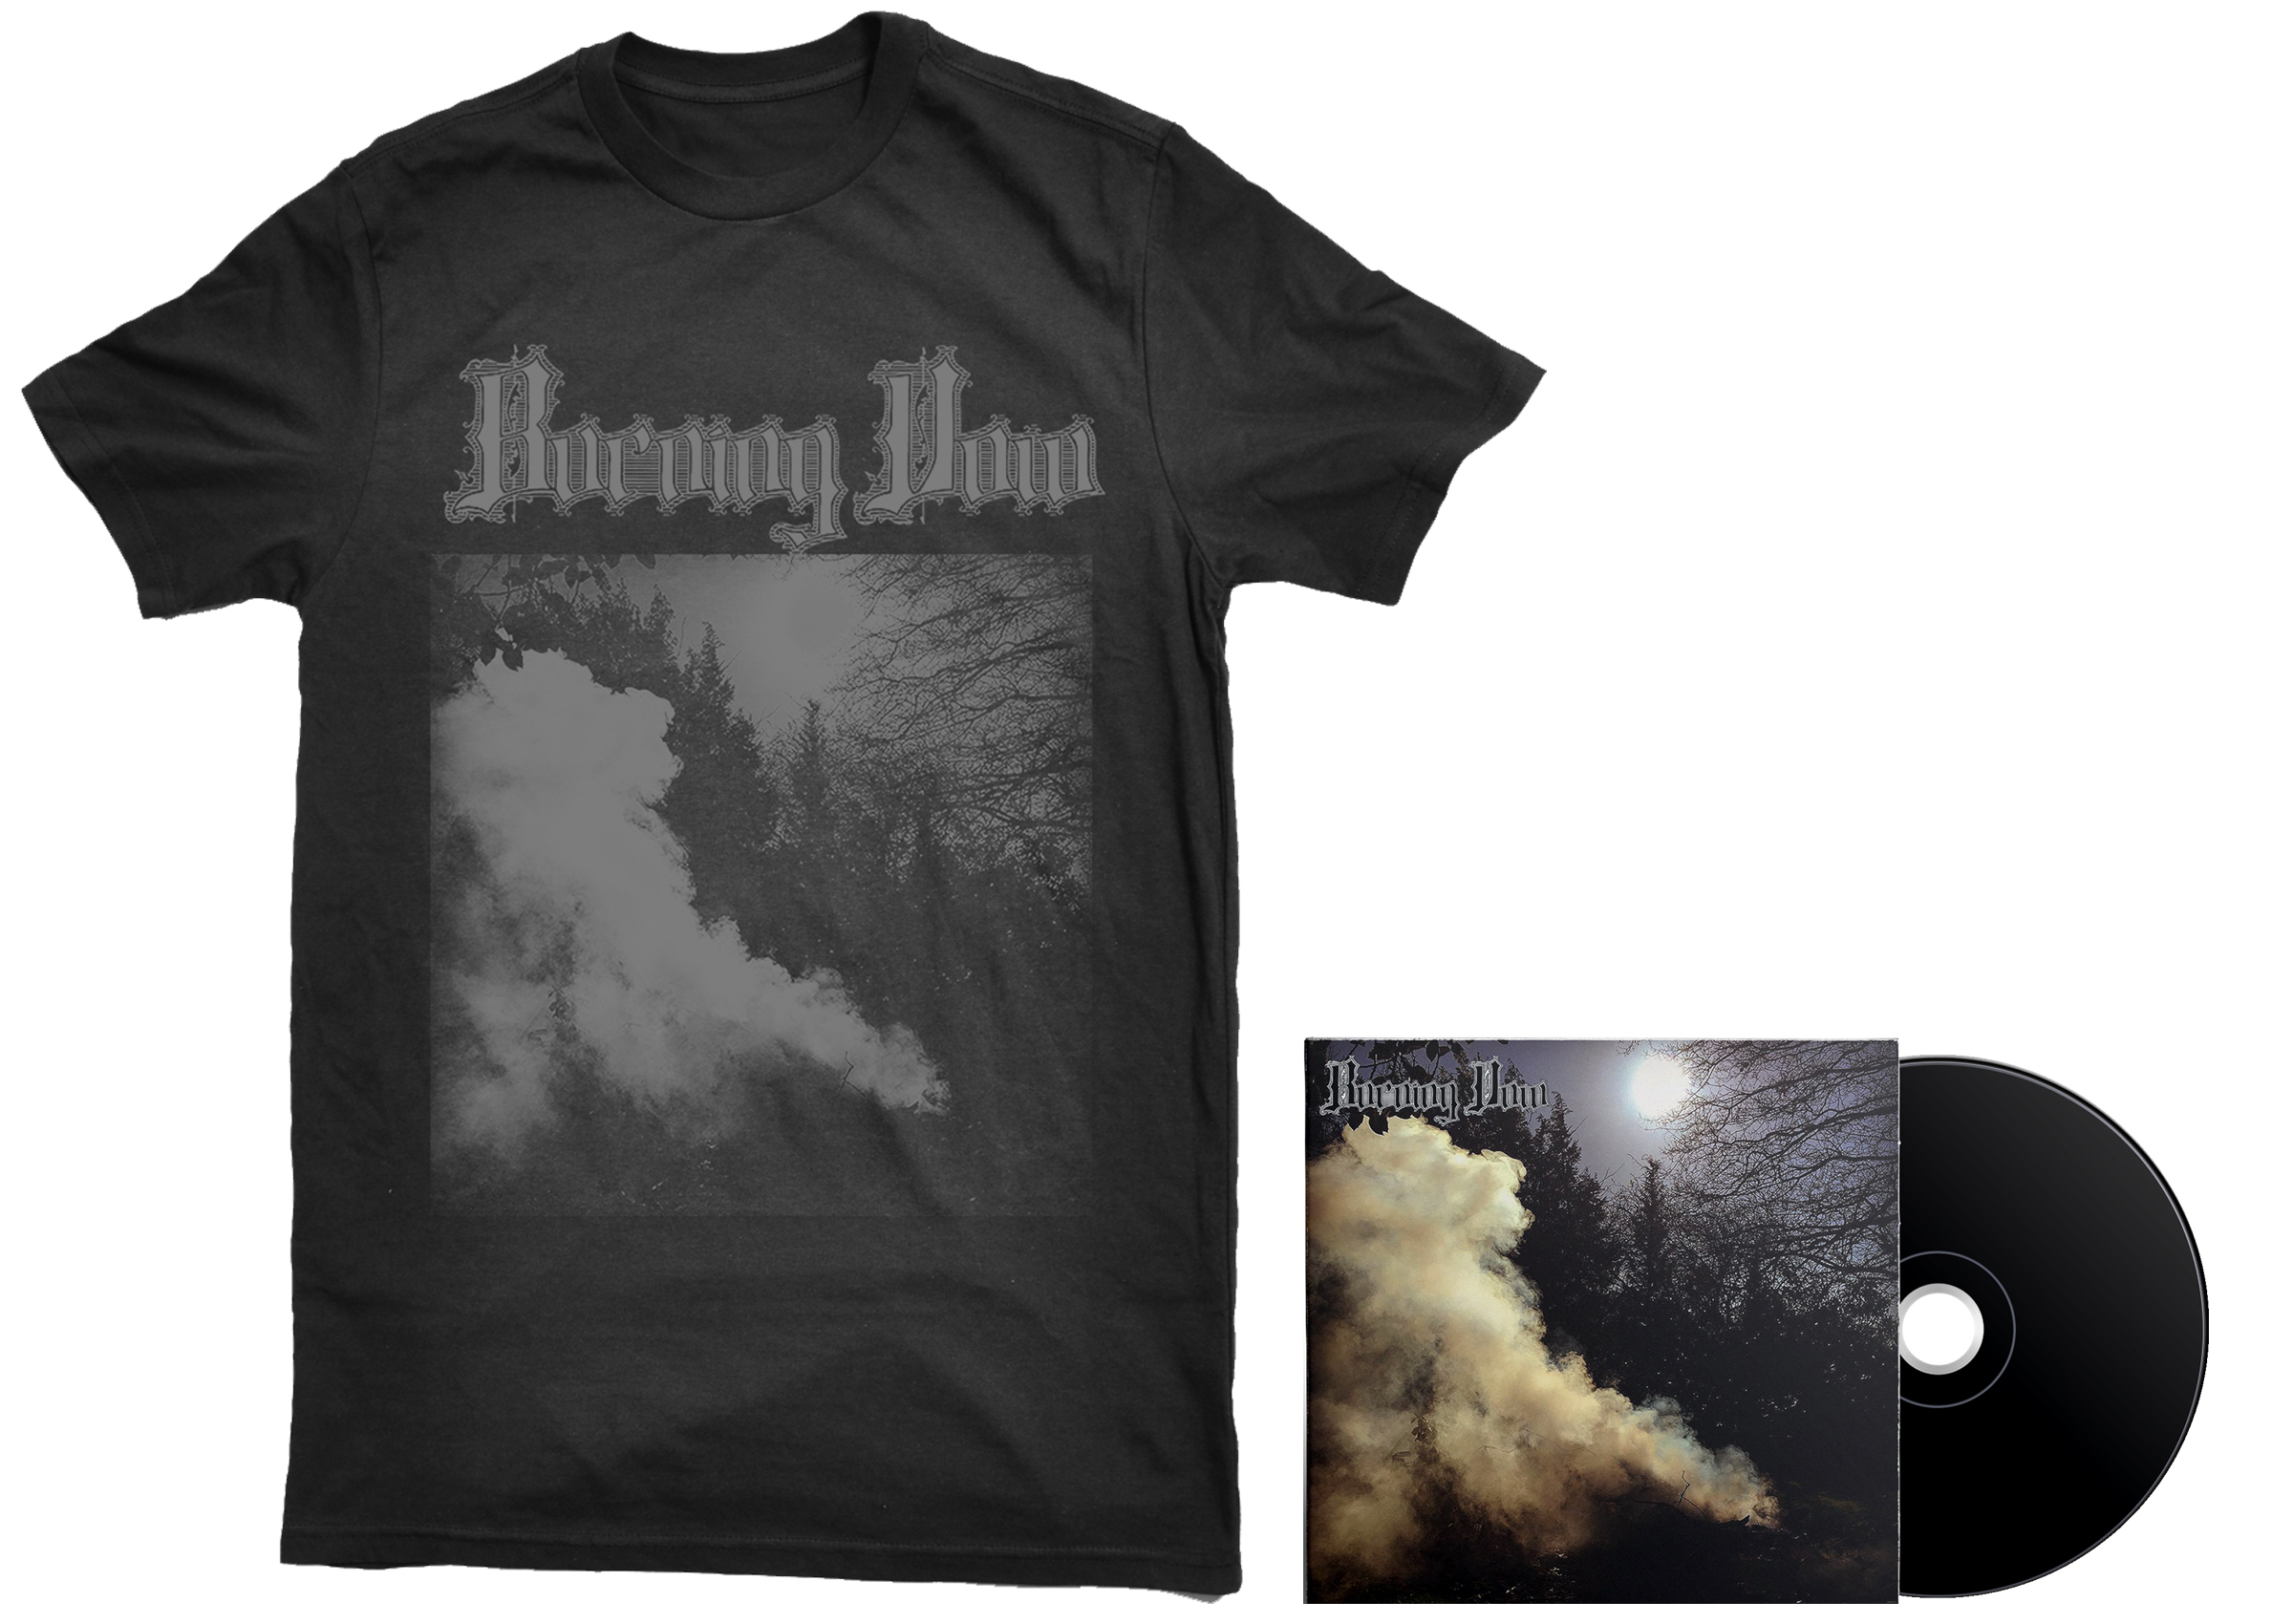 Burning Vow - S/T shirt + CD PREORDER